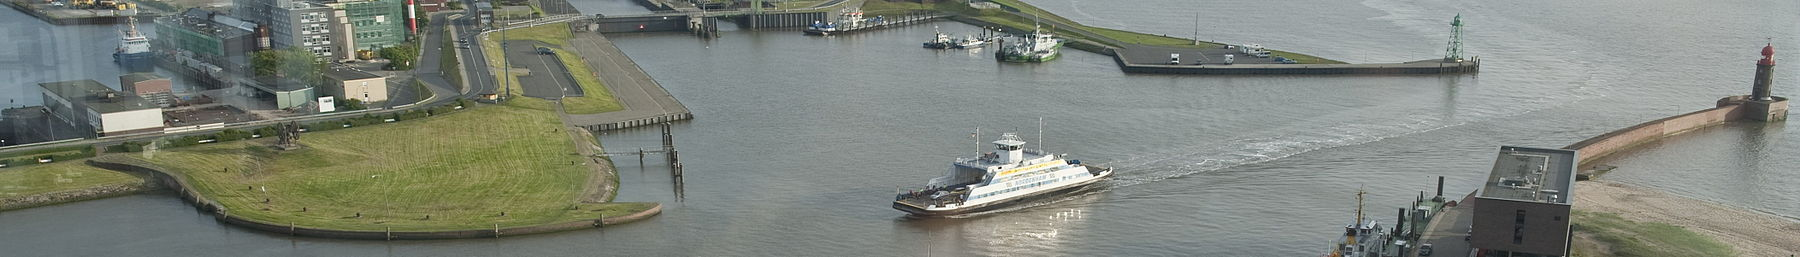 Bremerhaven banner Harbour view from tower.jpg